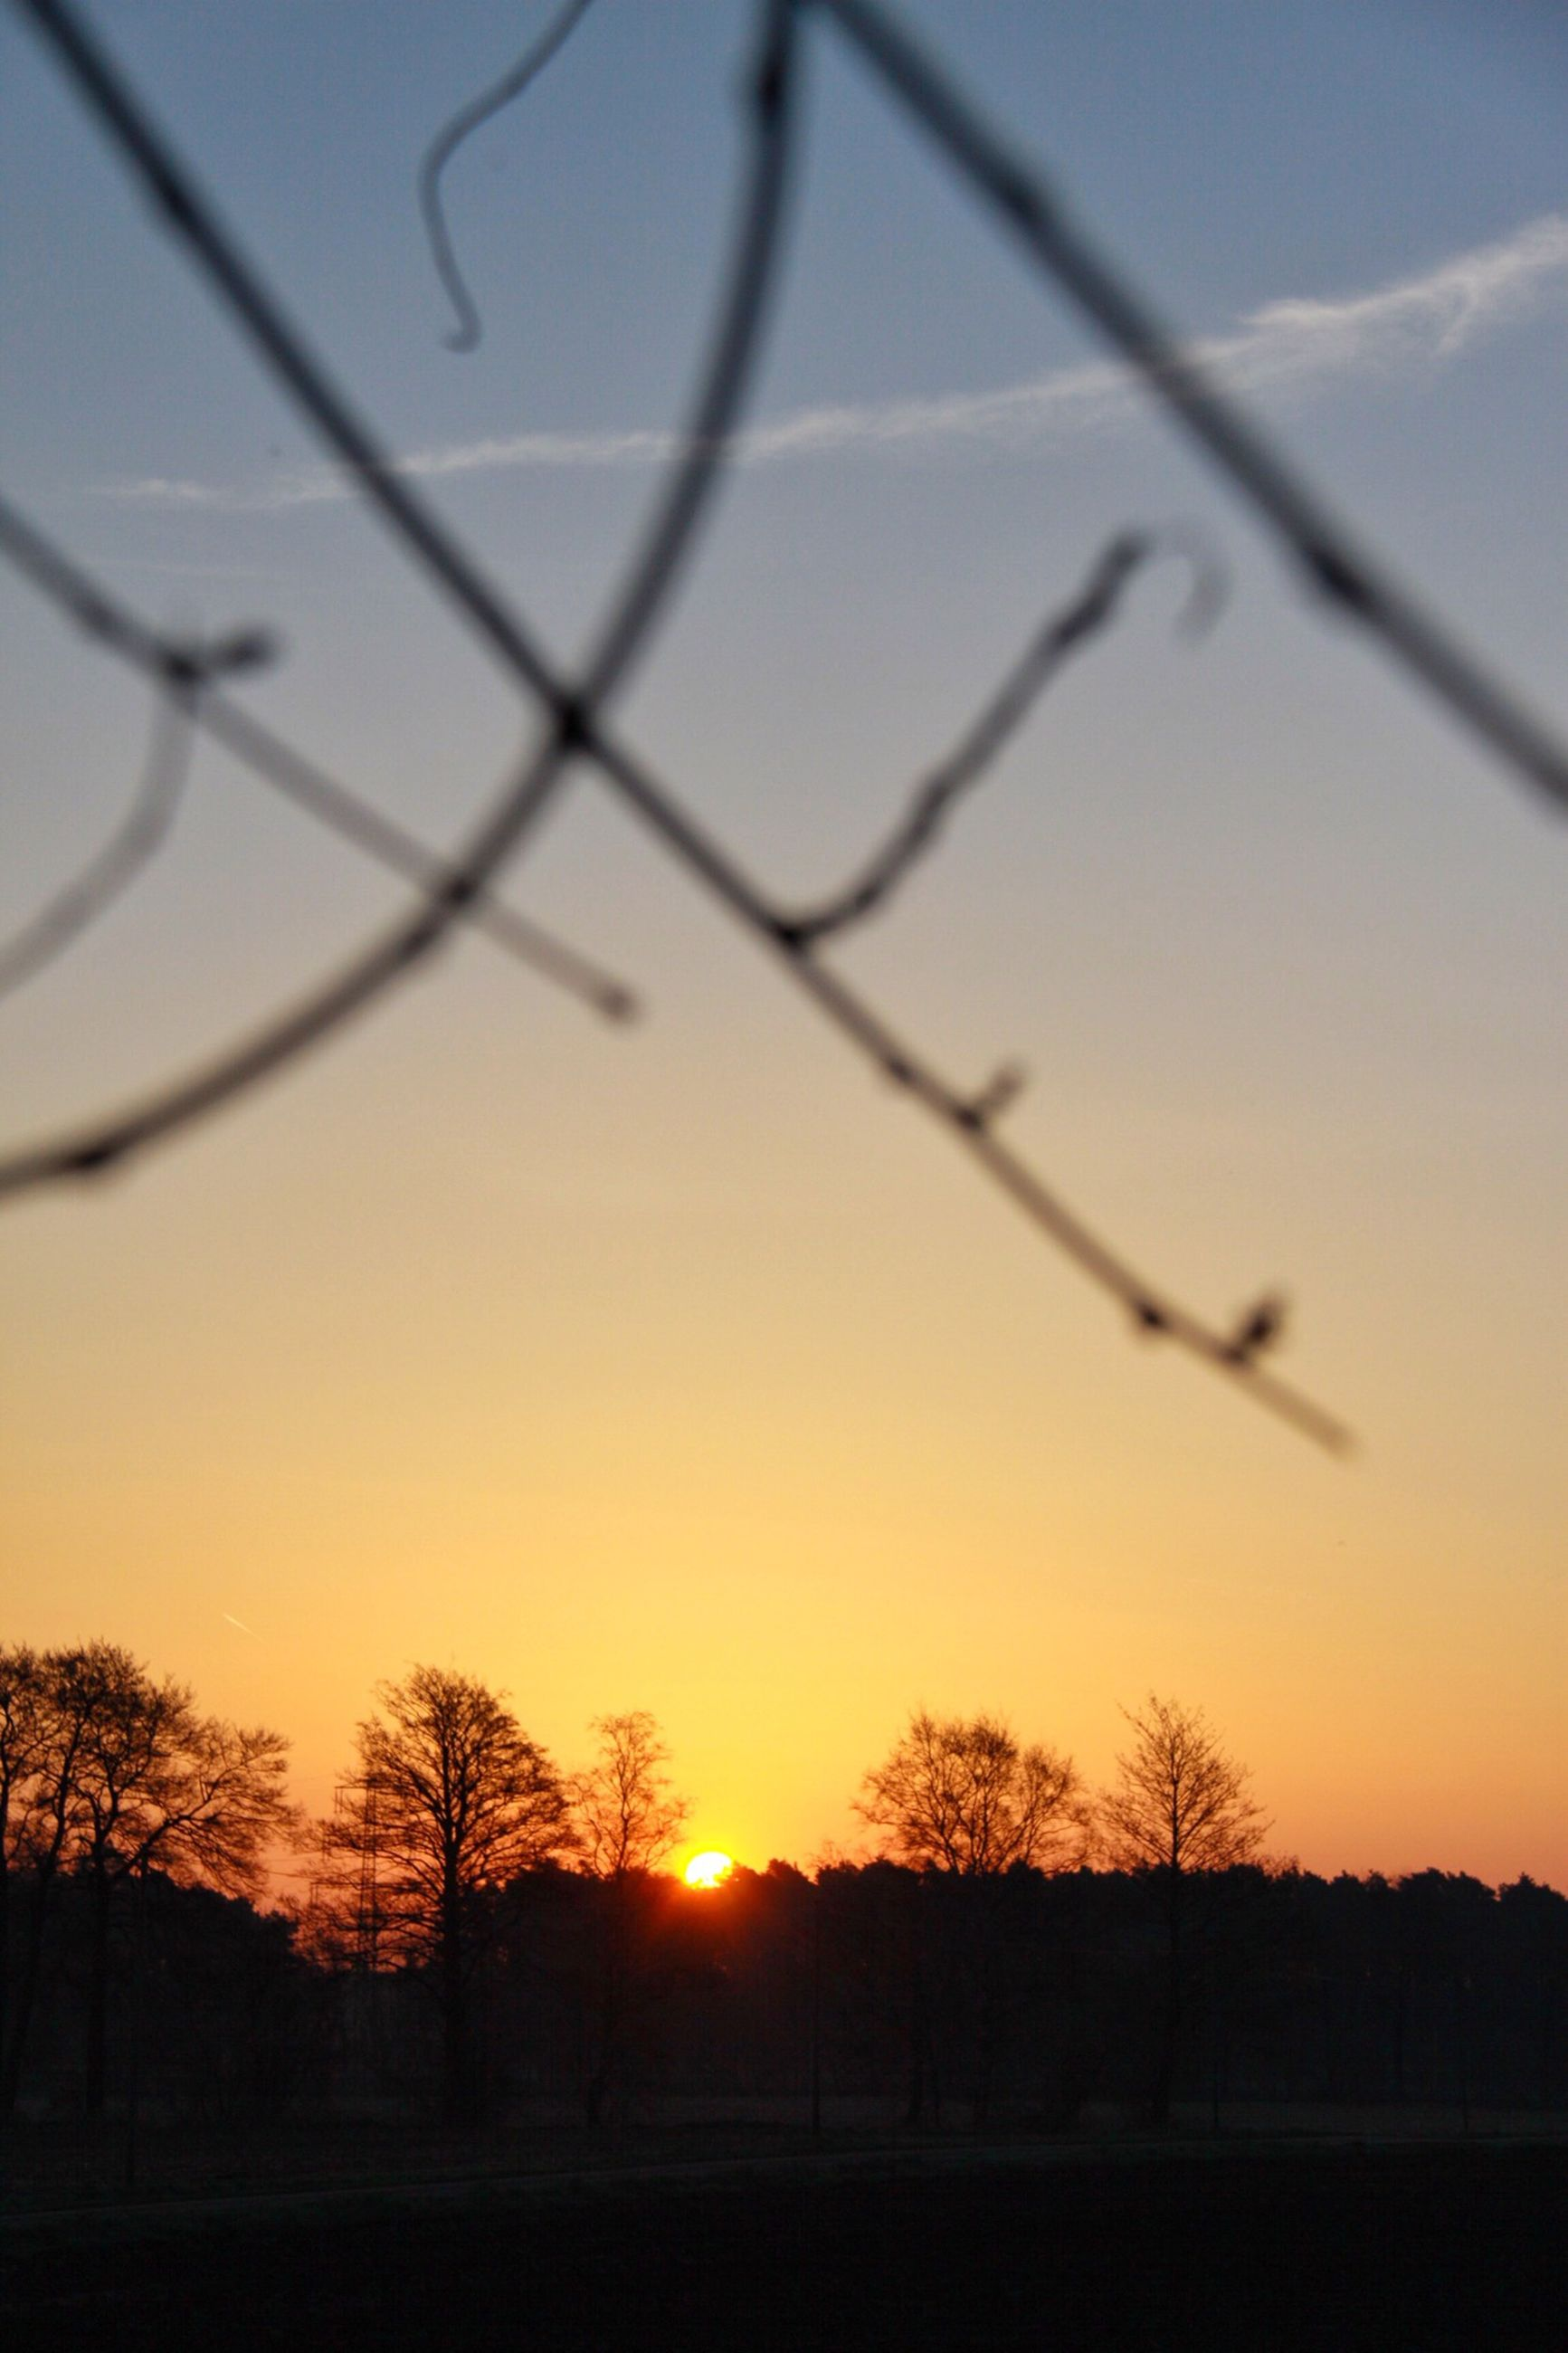 sunset, silhouette, orange color, sun, scenics, beauty in nature, tranquil scene, tranquility, tree, nature, idyllic, landscape, bare tree, sky, field, branch, sunlight, outdoors, no people, clear sky